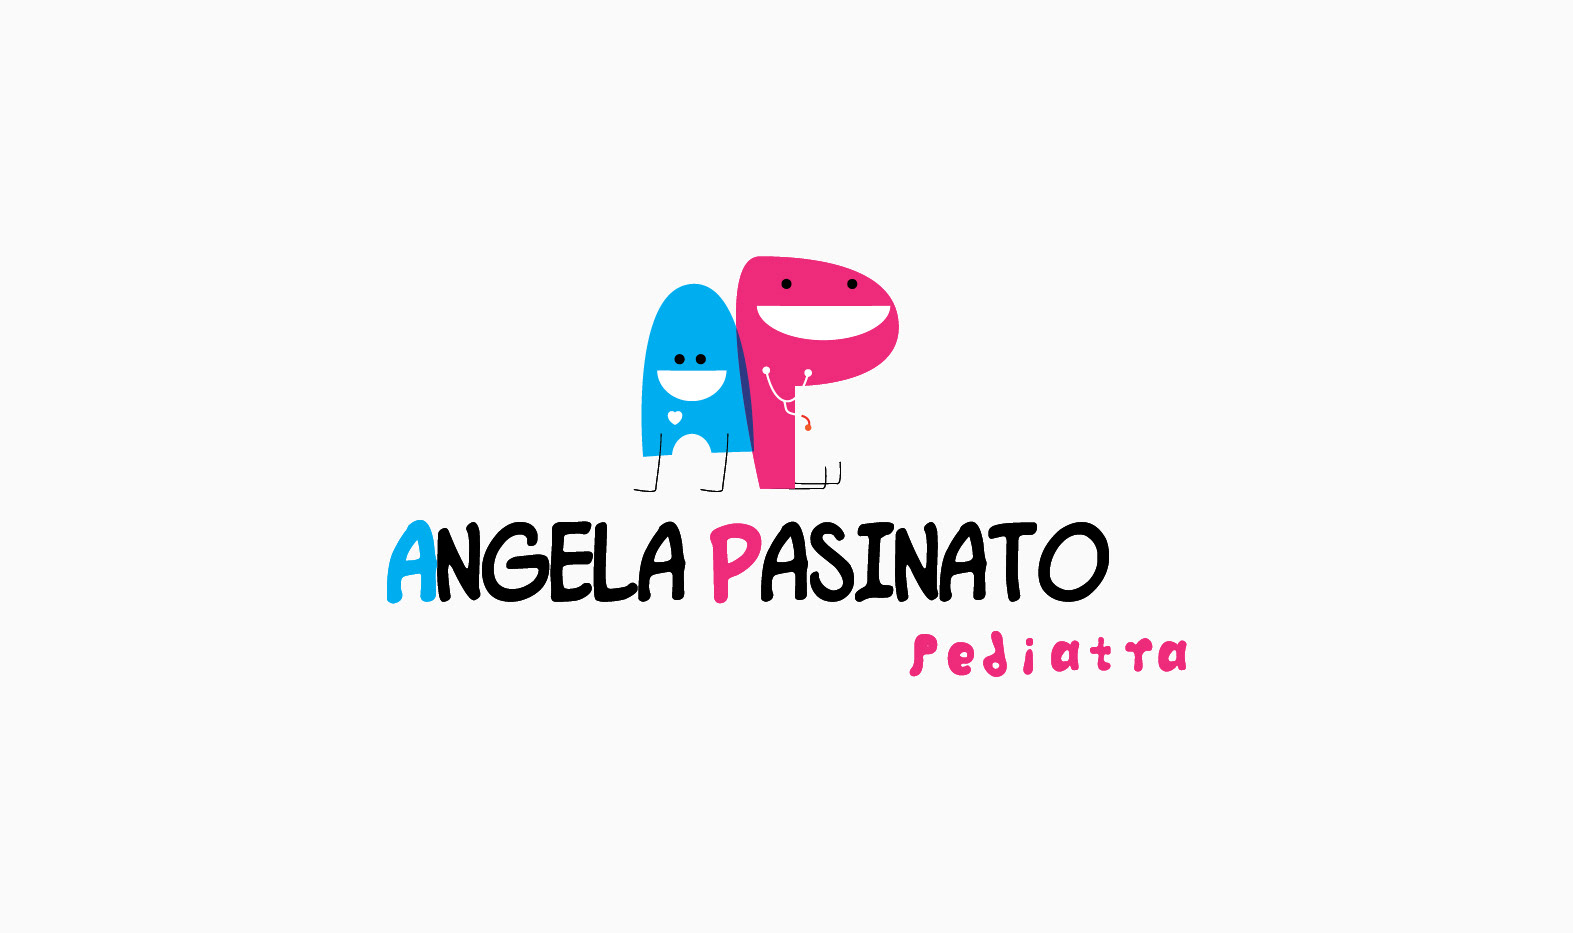 Logo For An Italian Pediatrician